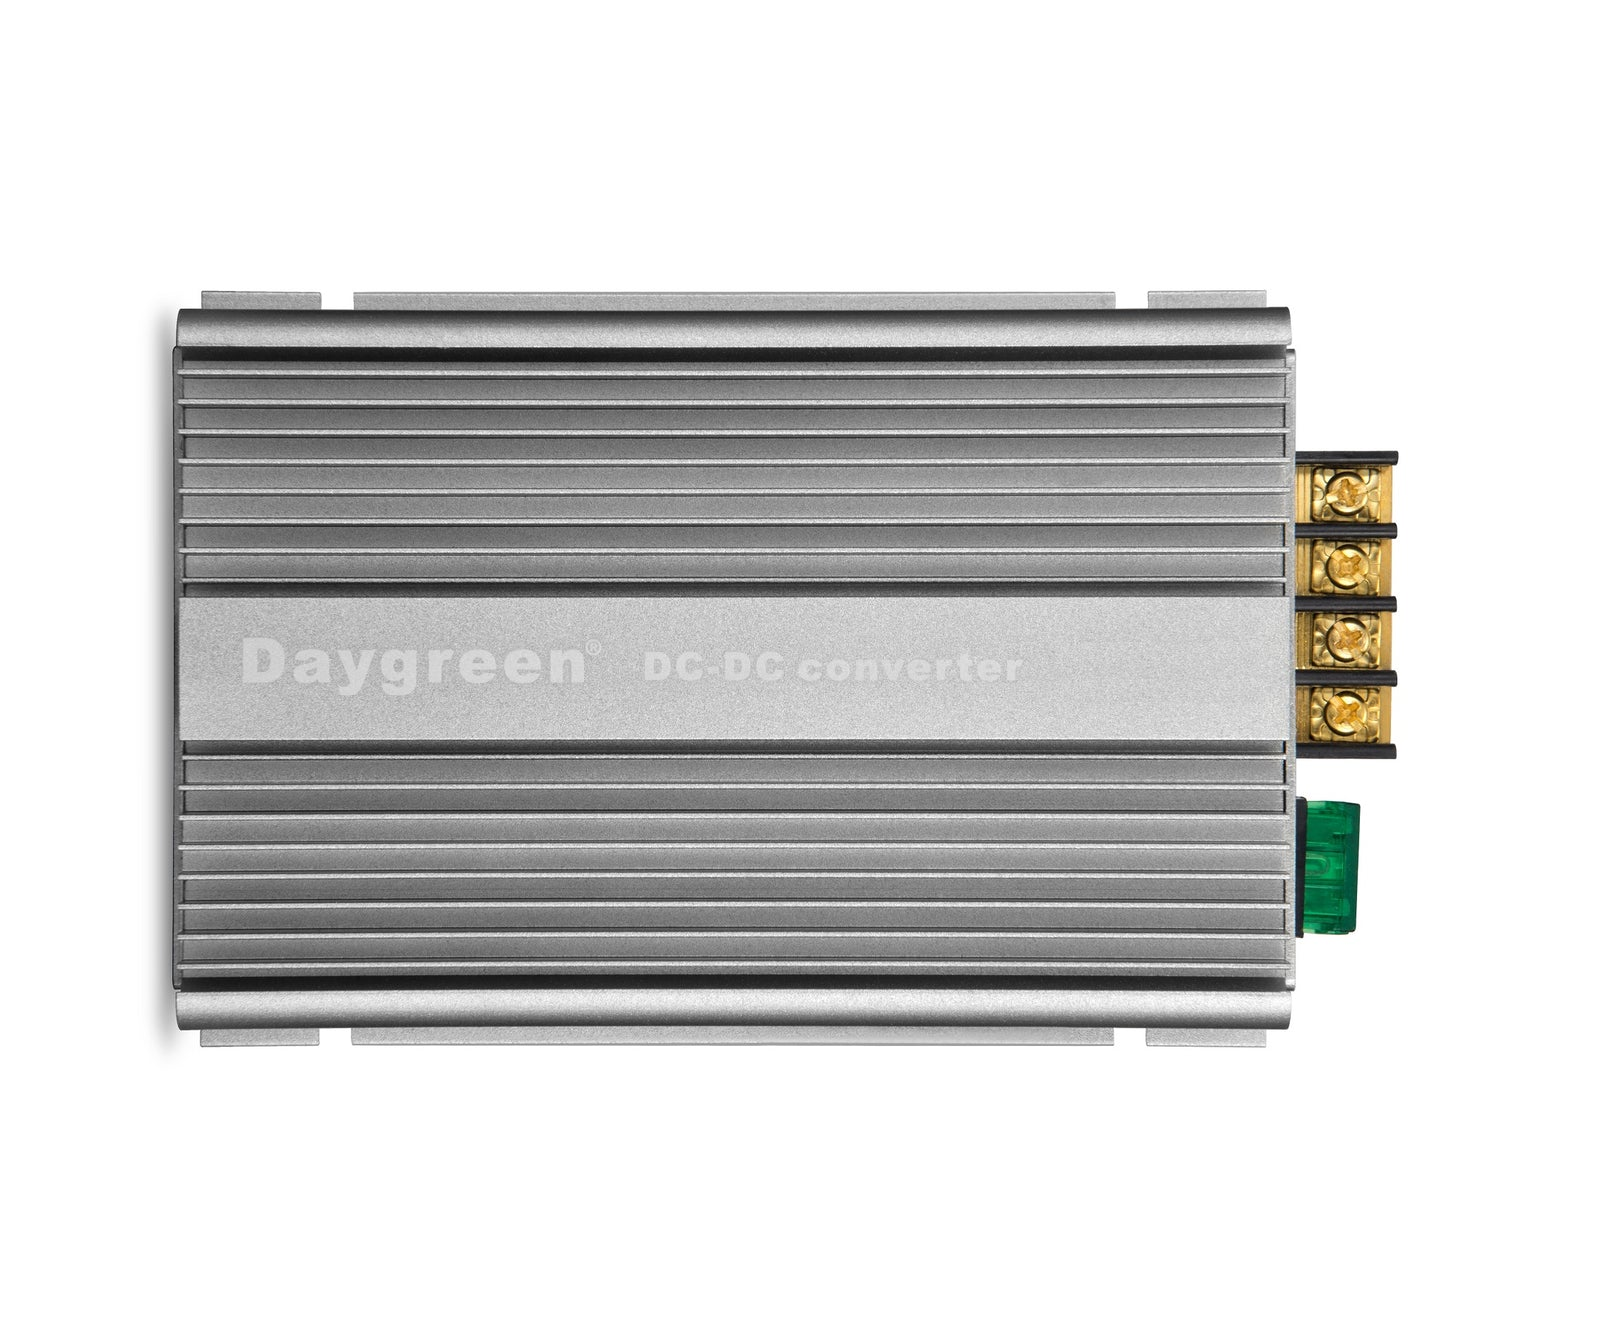 72V to 24V 40A 960W DC DC Step Down Converter Voltage Regulator